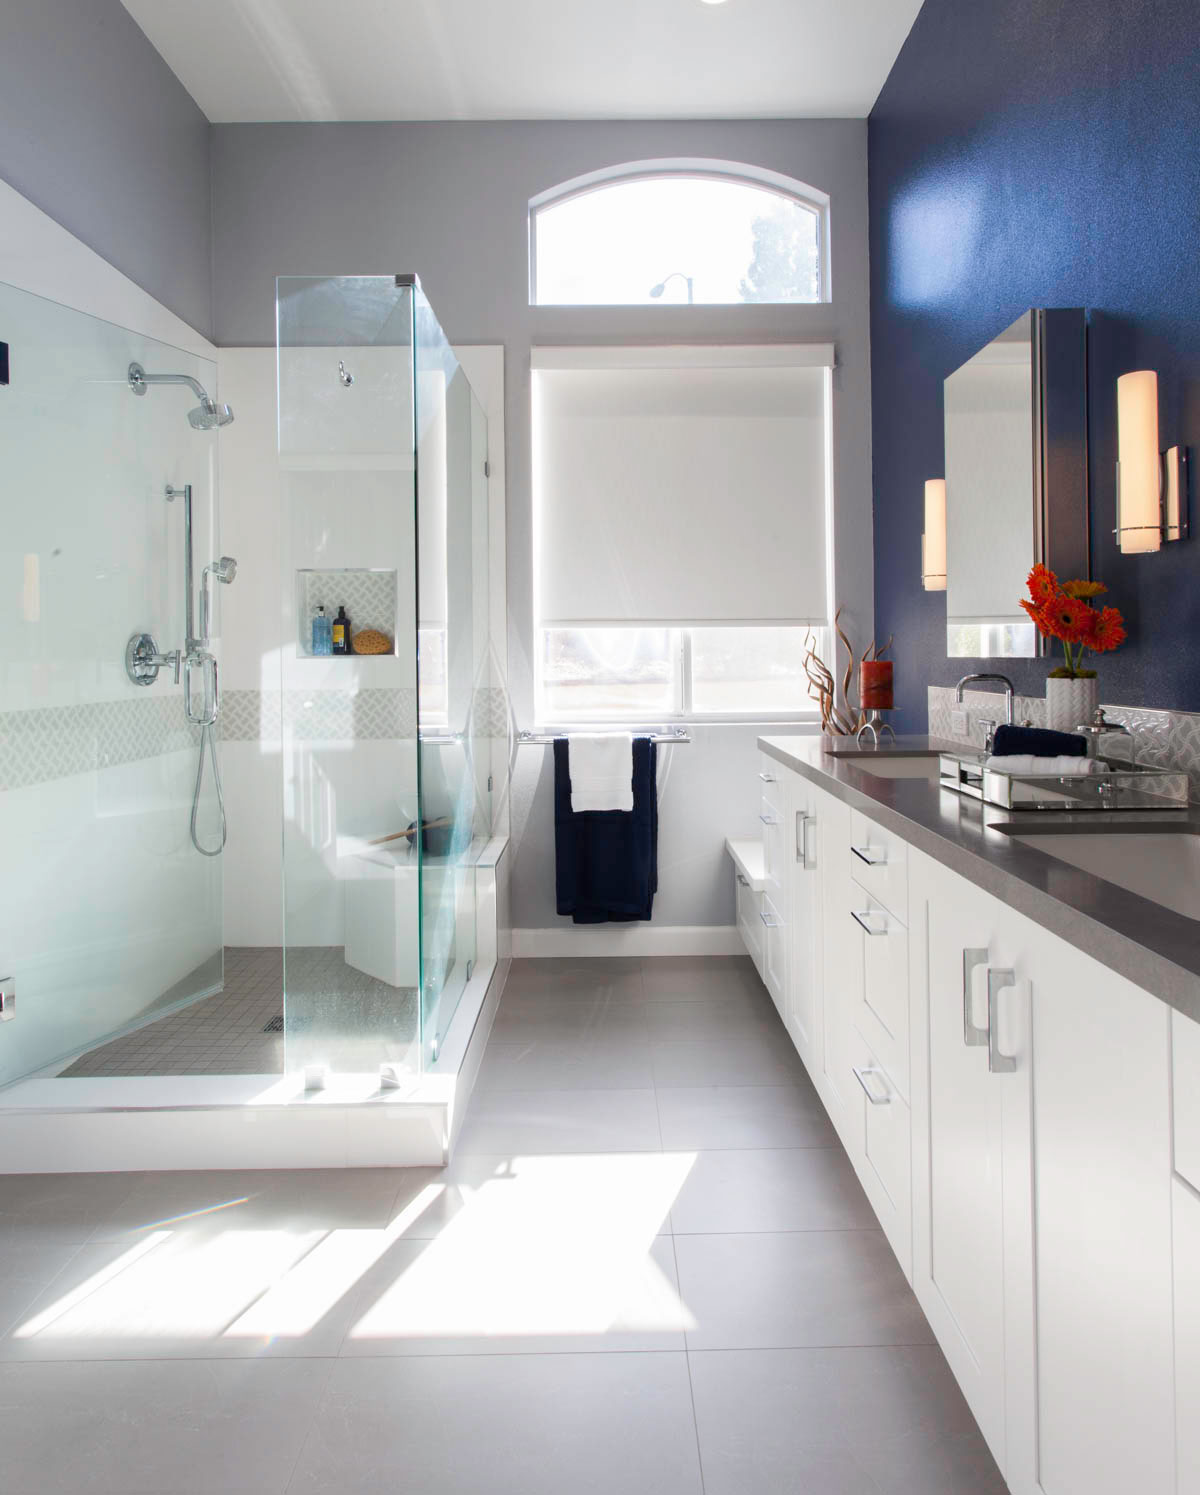 2019 Readers' Choice Bathroom of the Year winner